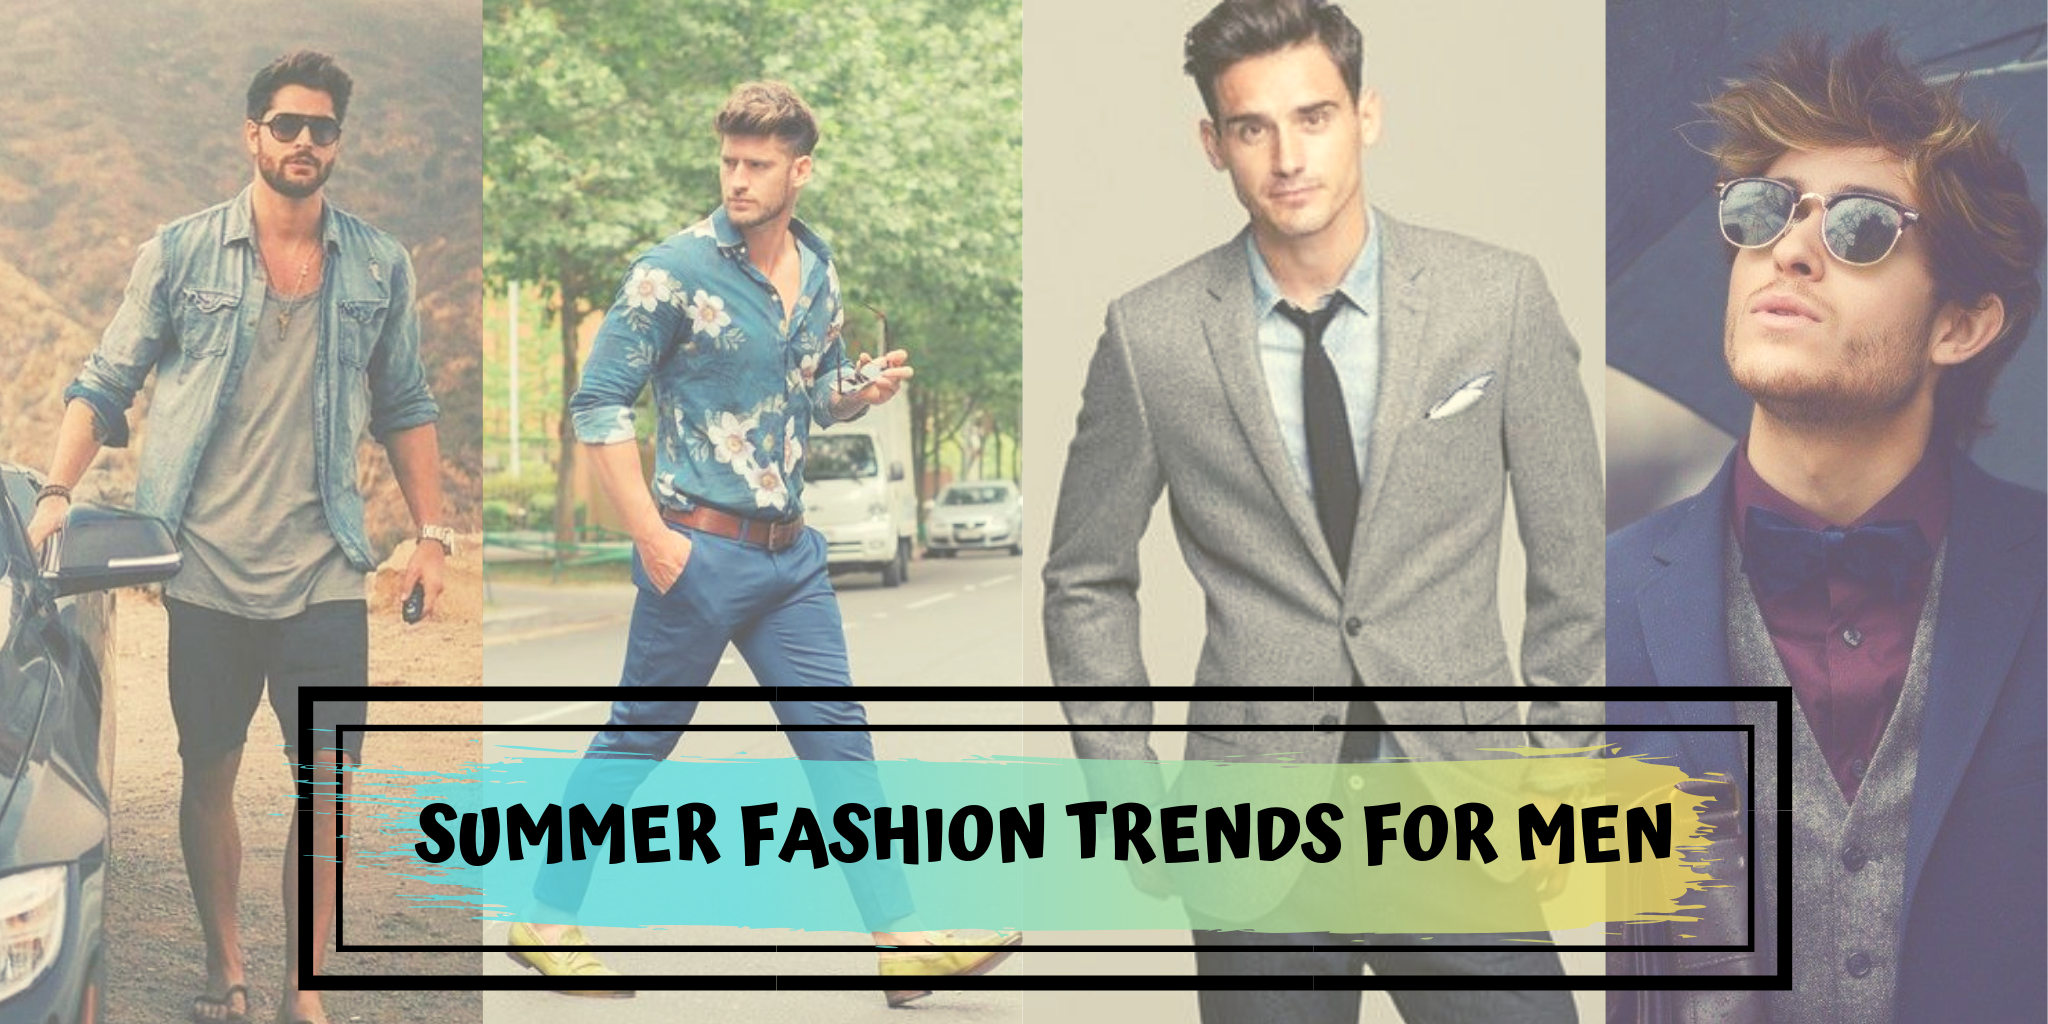 Gone are the days when men used to ignore the #fashion trends and wear those same old regular basics...